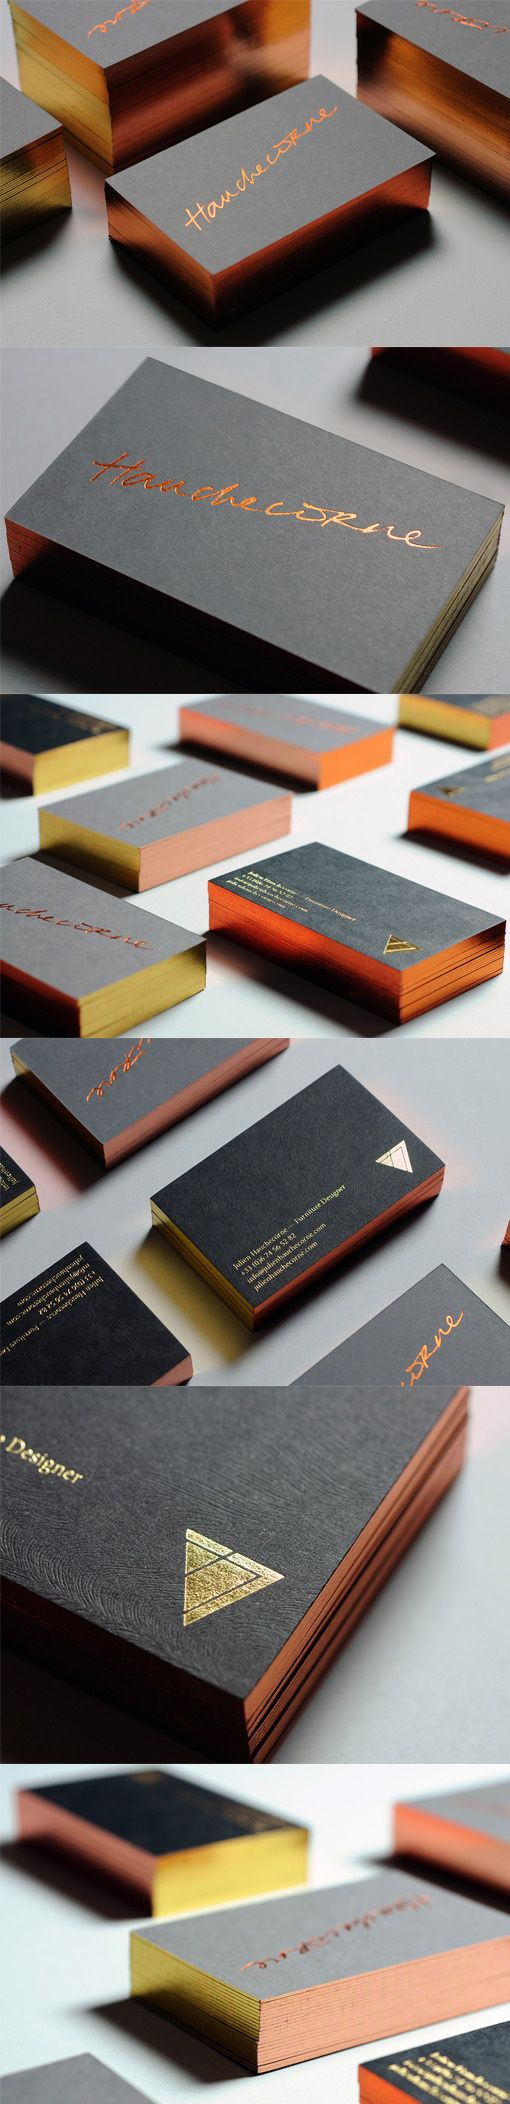 These beautiful metallic foil business cards have many subtle details that make them more than just a metal-on-black design.